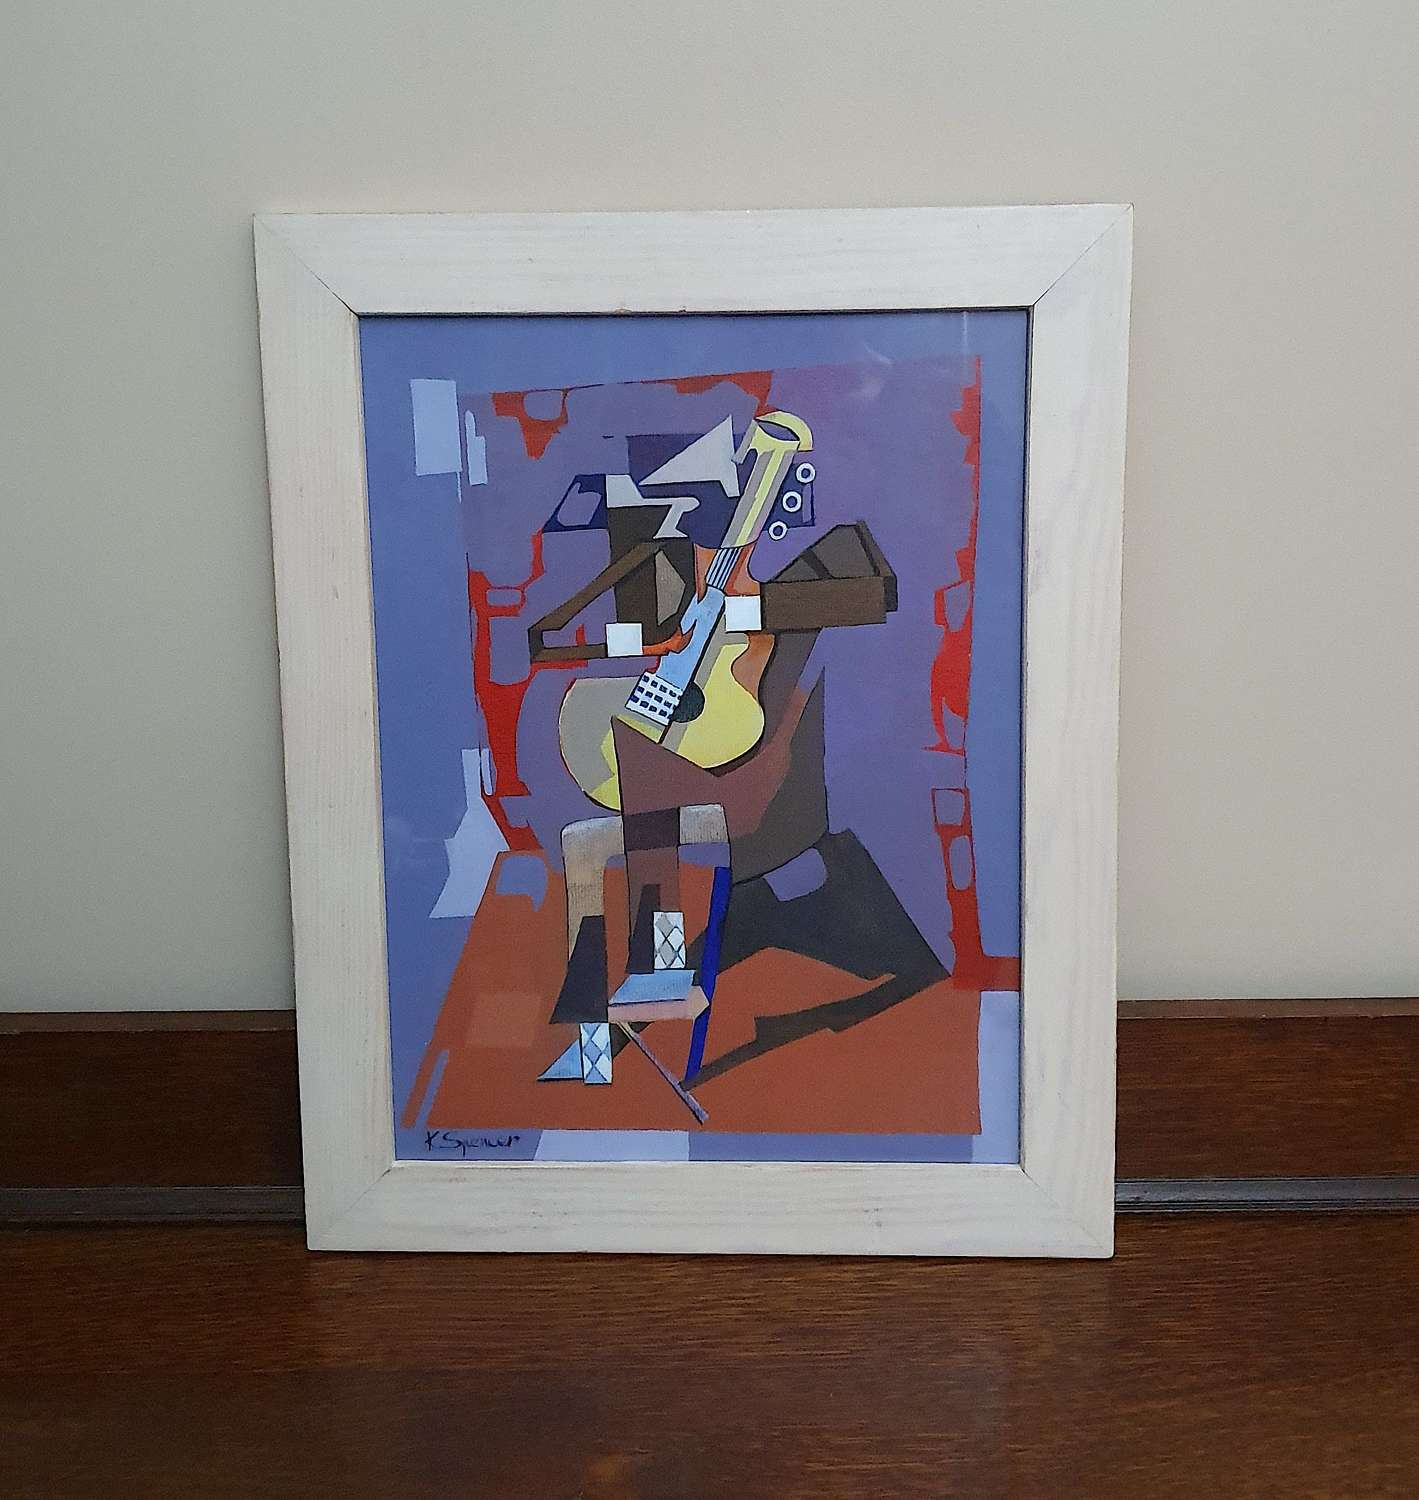 Framed & Signed Cubist Style Painting